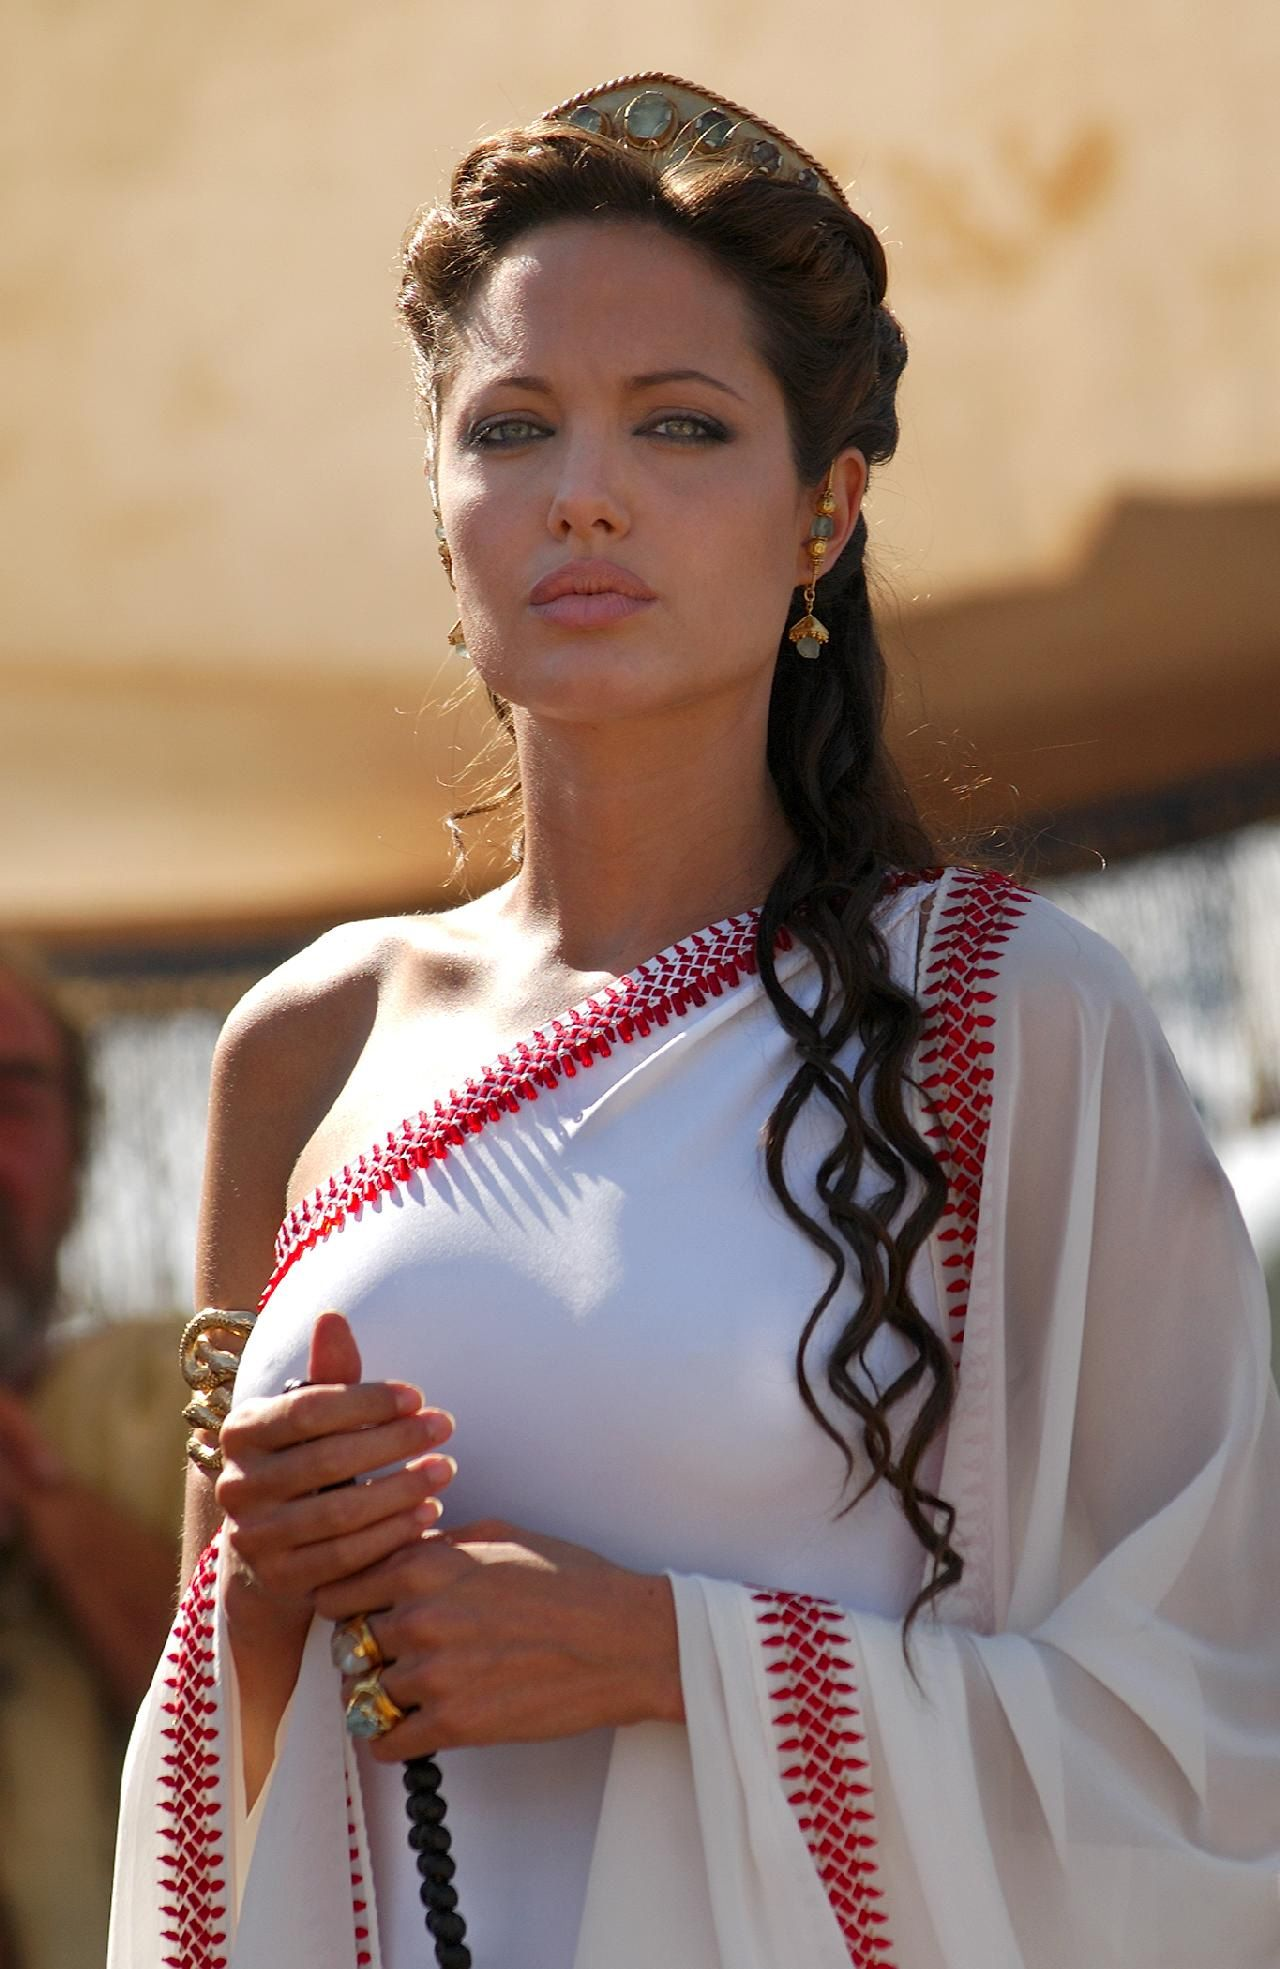 Angelina Jolie Porn Look A Like angelina jolie in a ancient greek dress from the film